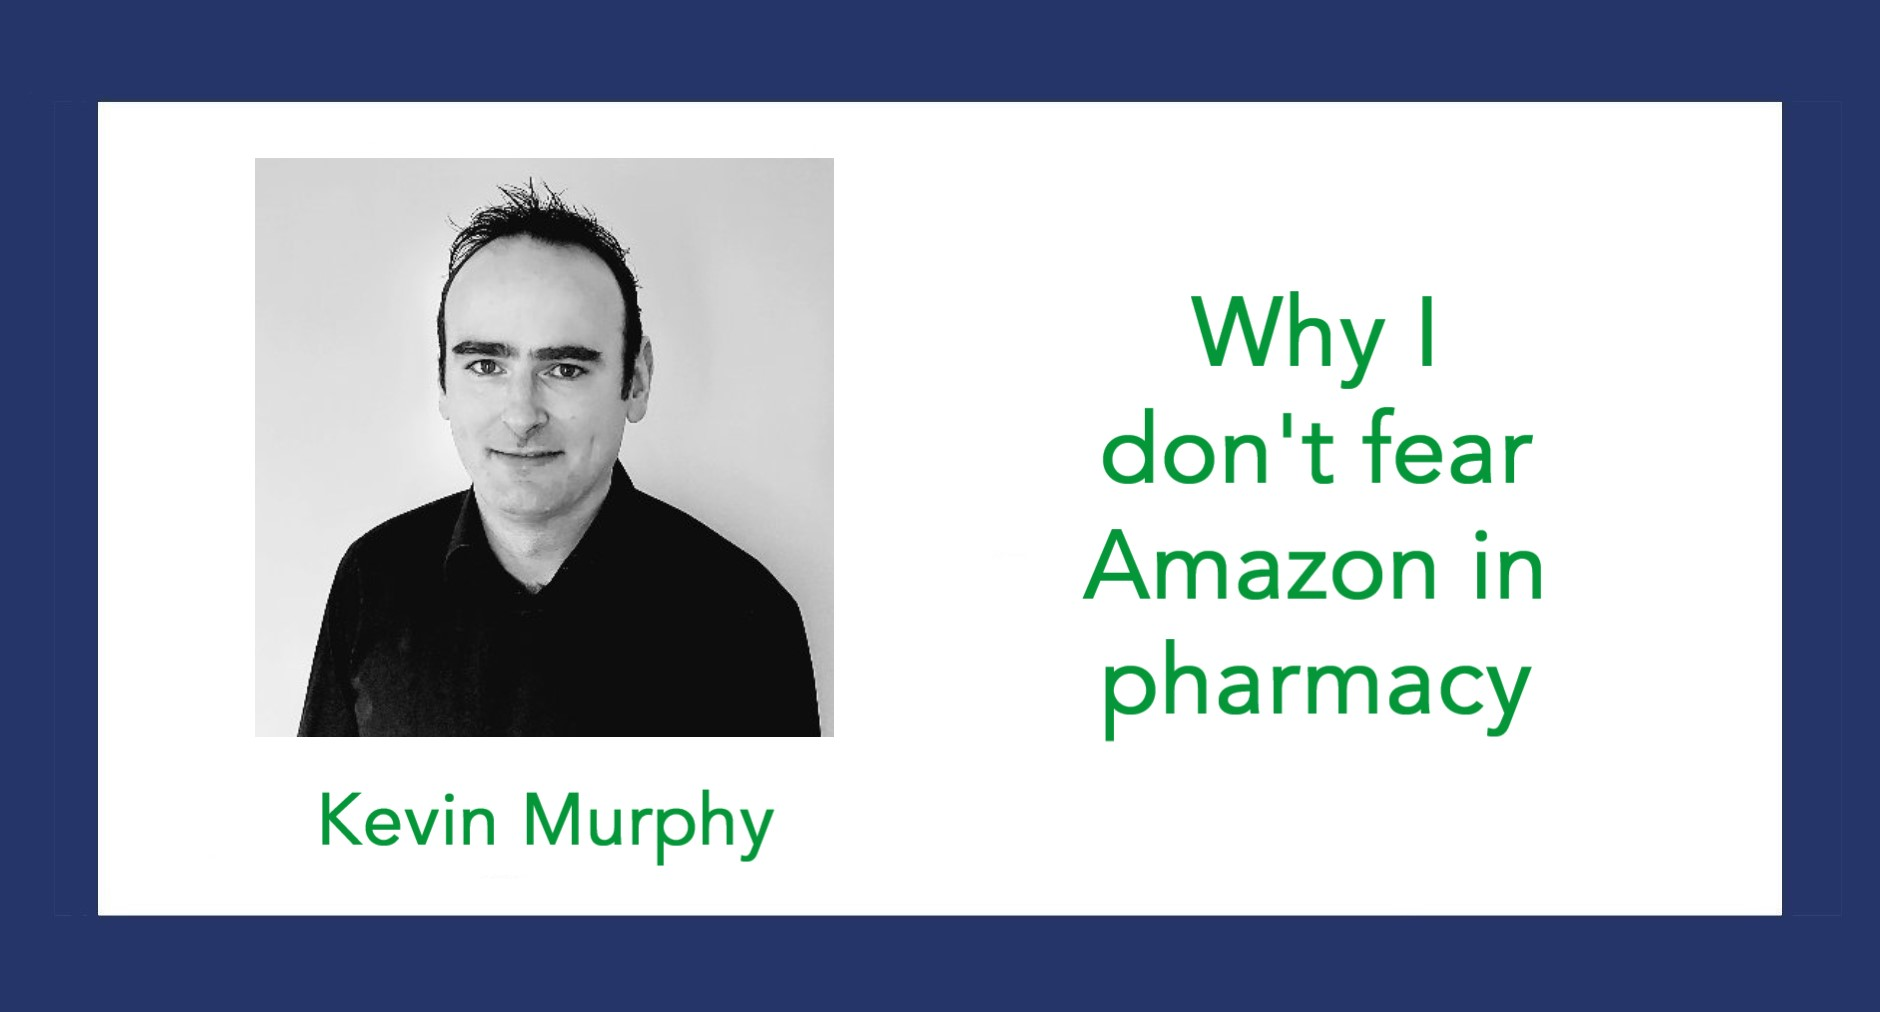 Why I don't fear Amazon in pharmacy